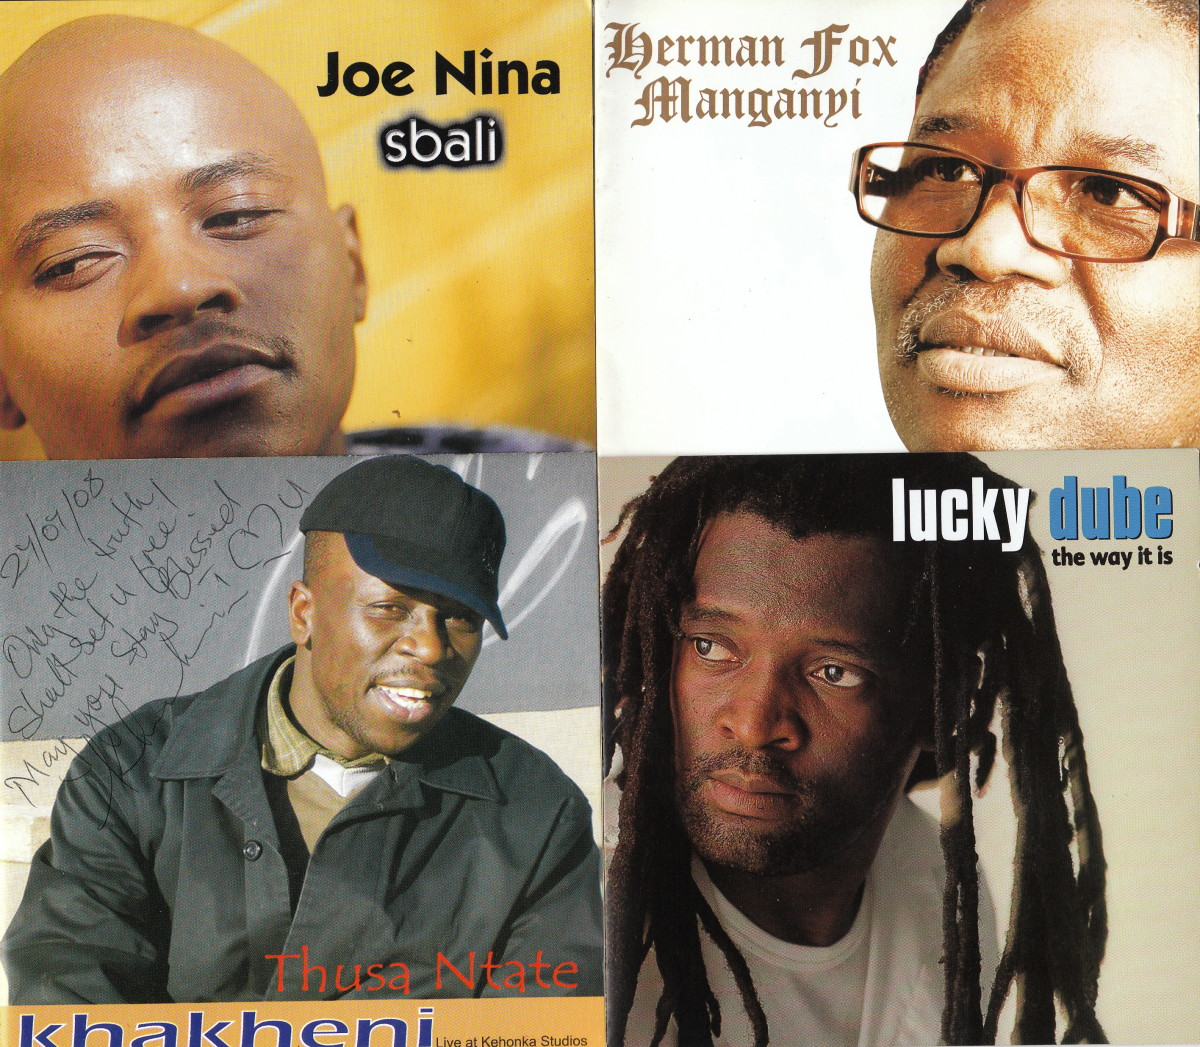 Joe Nina, Herna fox Manganyi, Khakheni and Lucky Dube